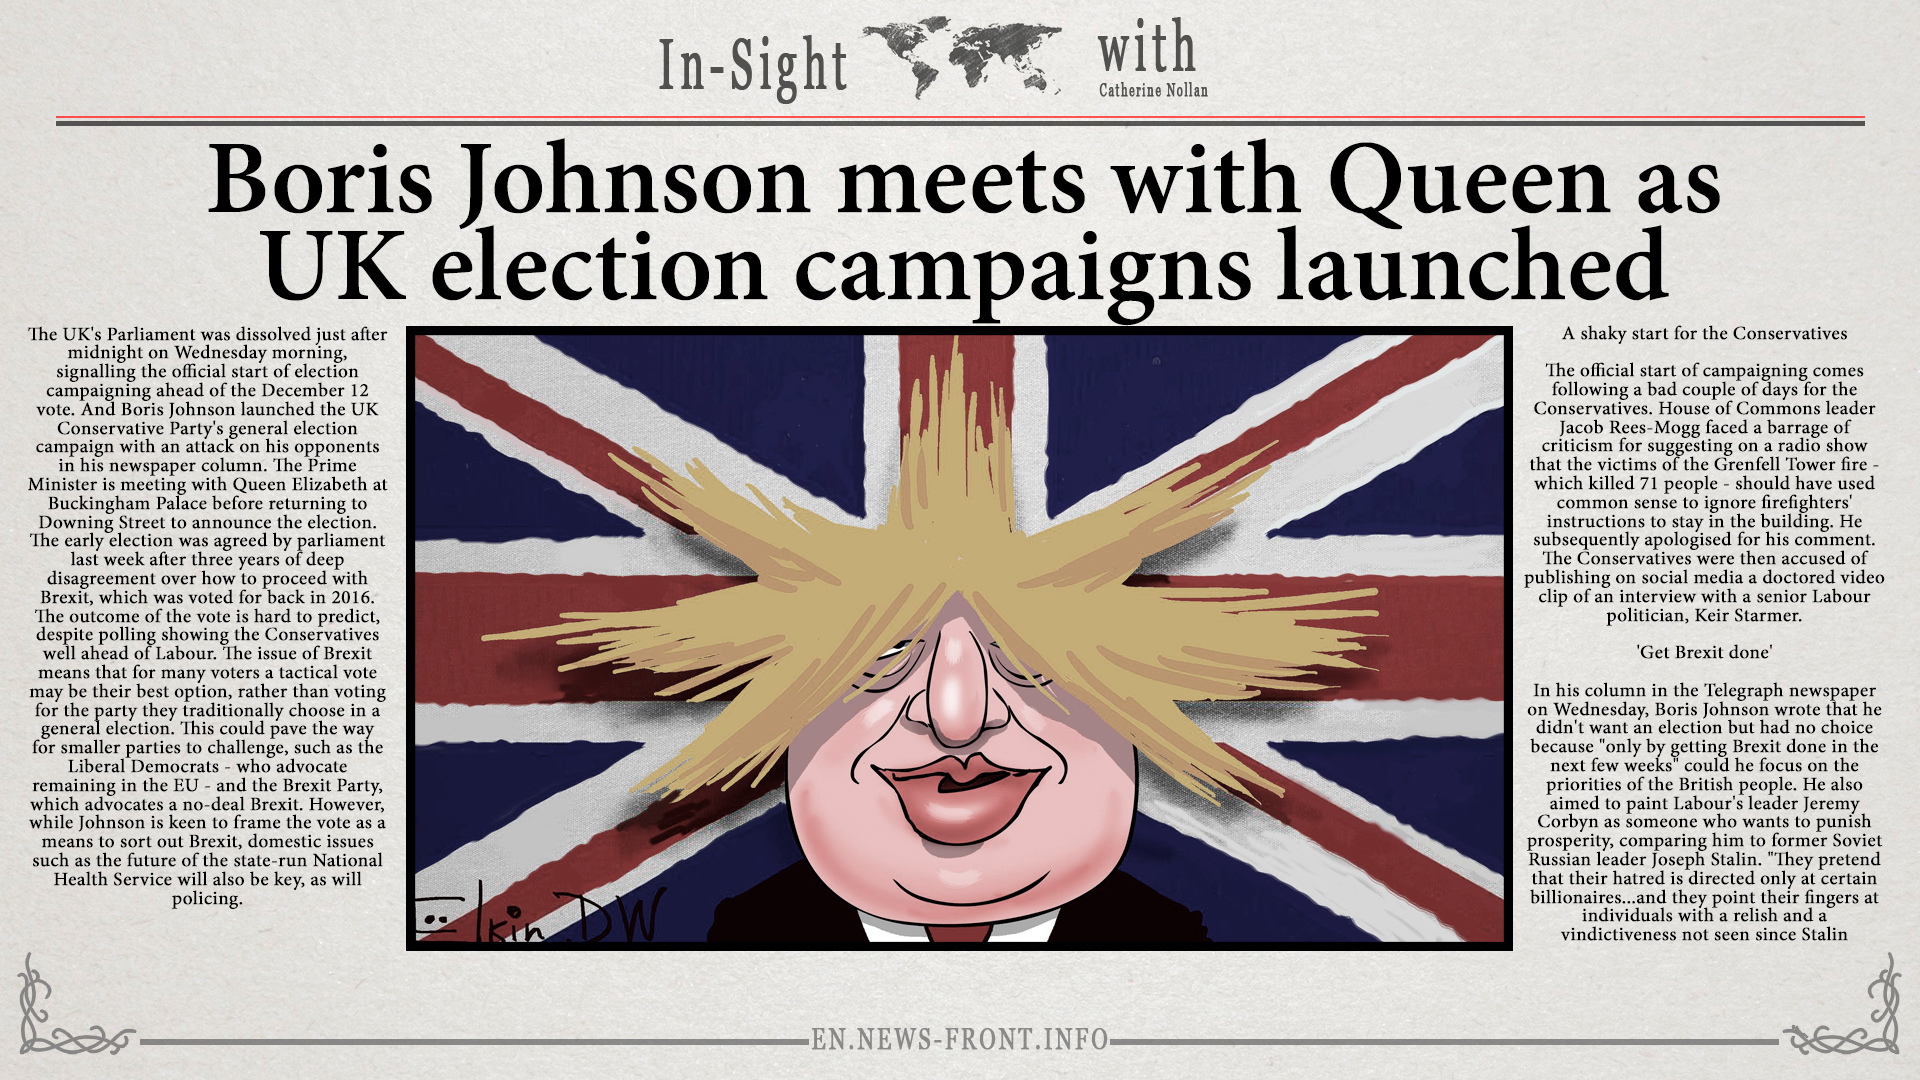 Boris Johnson meets with Queen as UK election campaigns launched